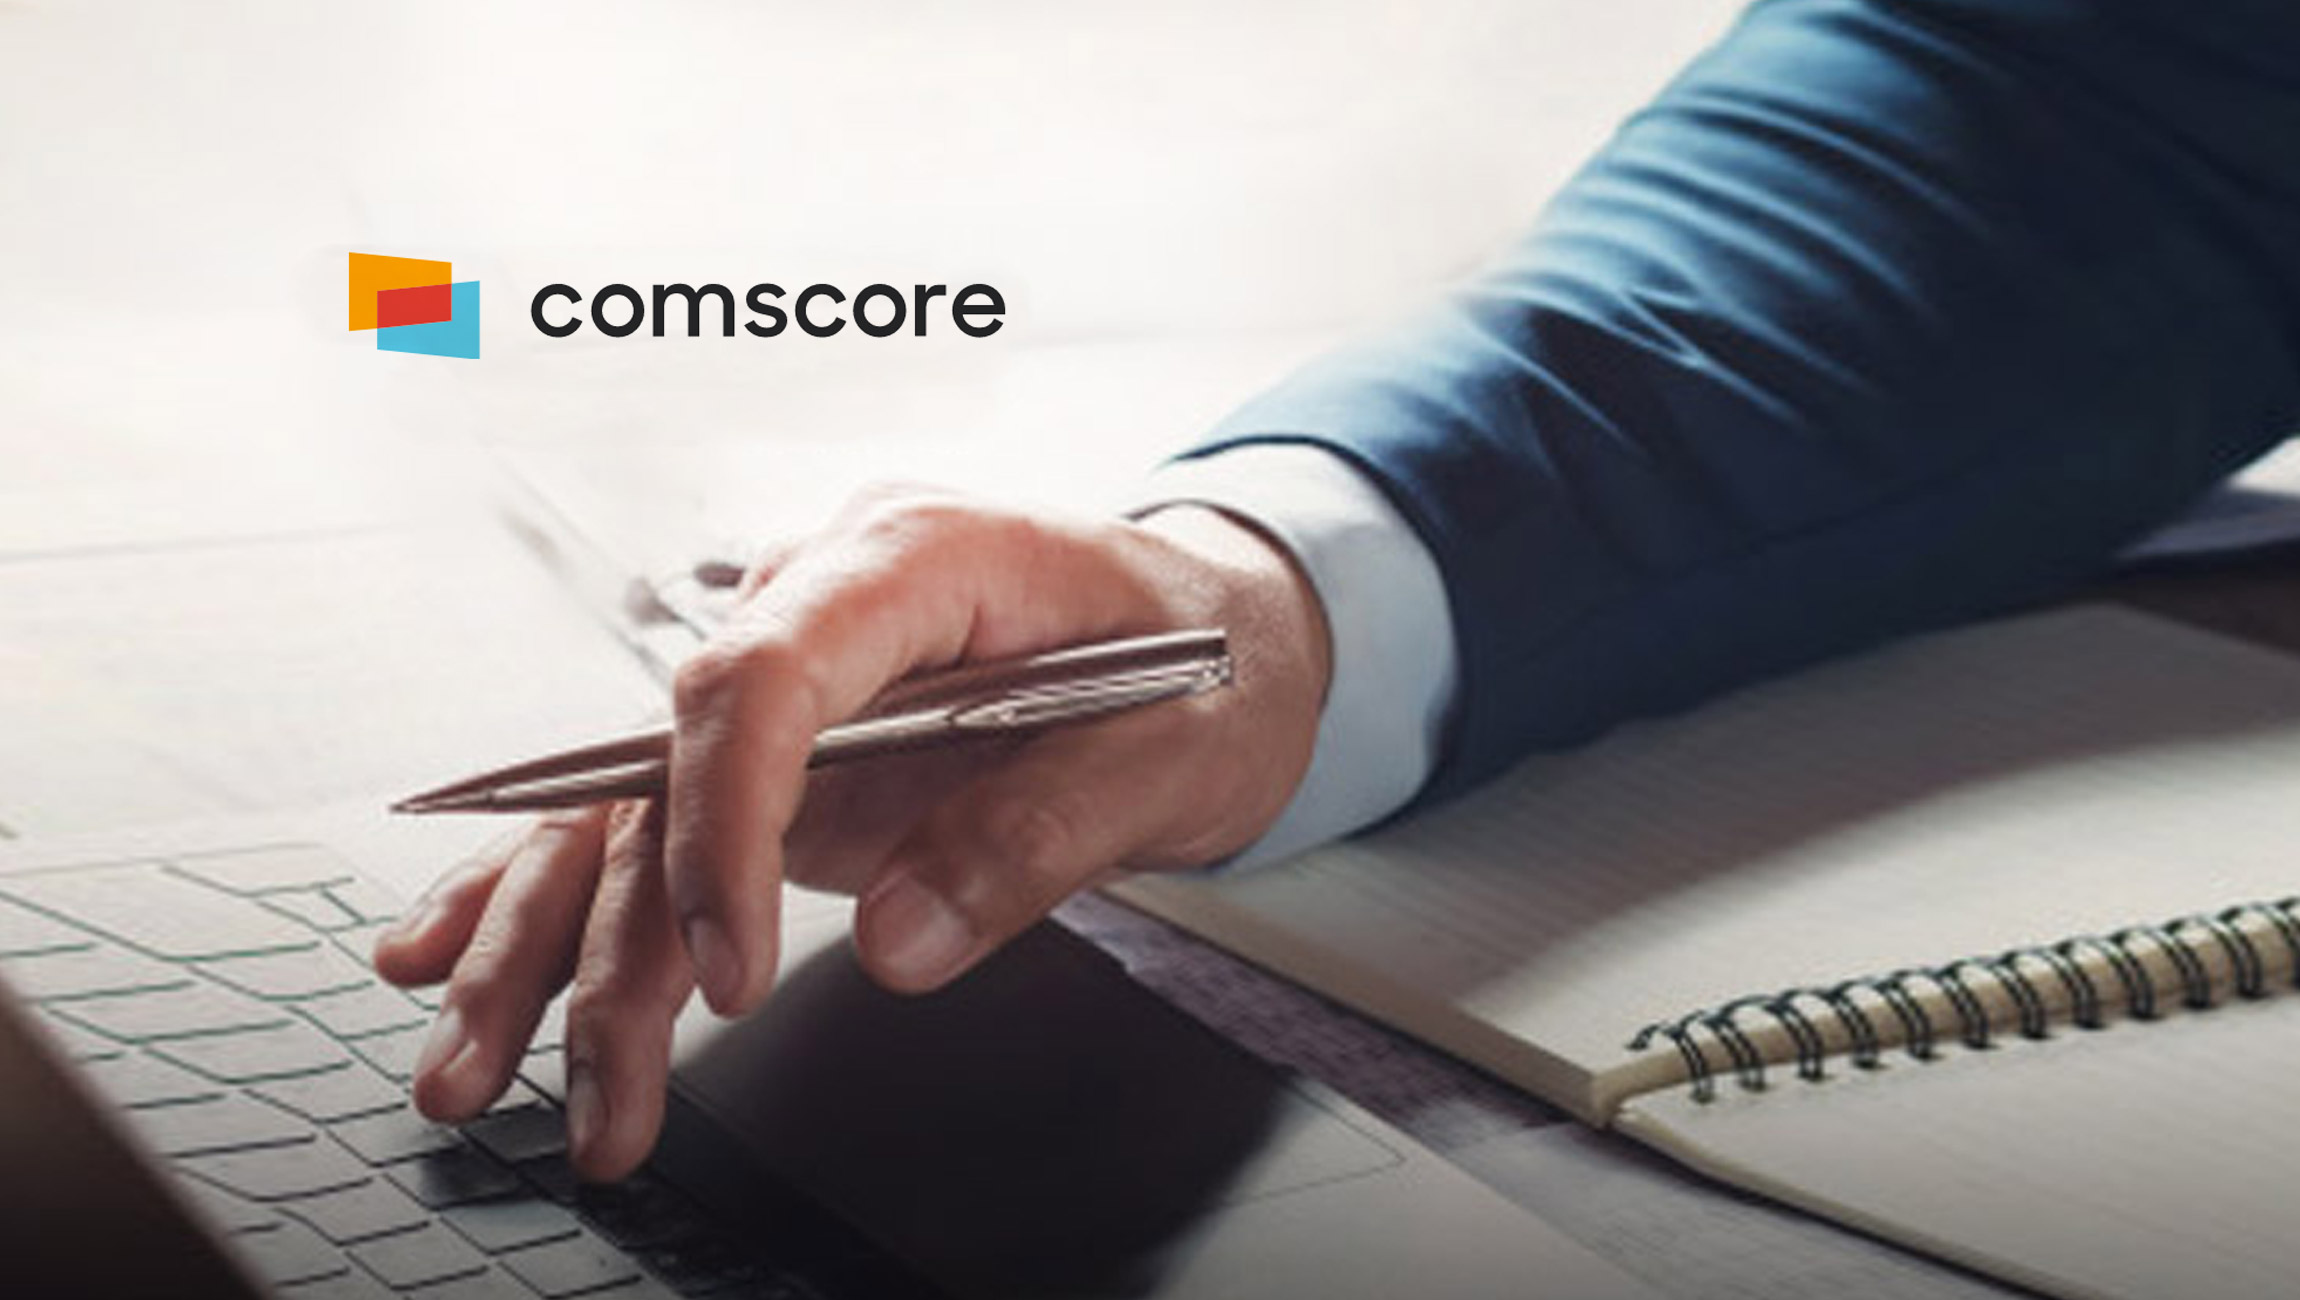 Comscore Signs Digital Audience Measurement Agreement With Newsmax